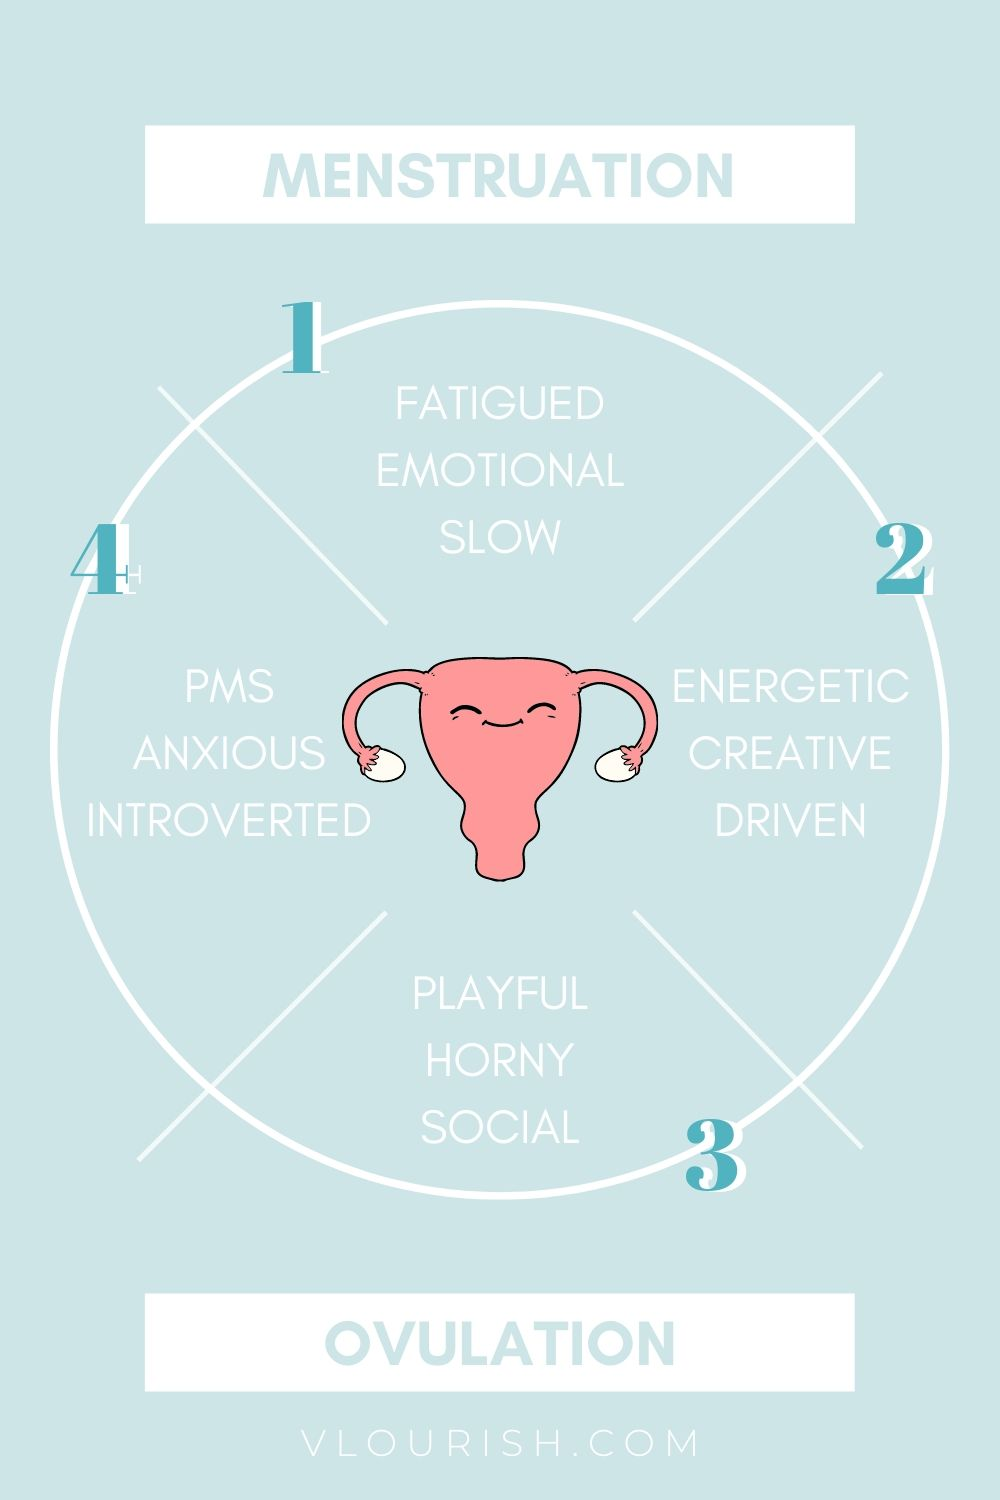 4 phases of the menstrual cycle